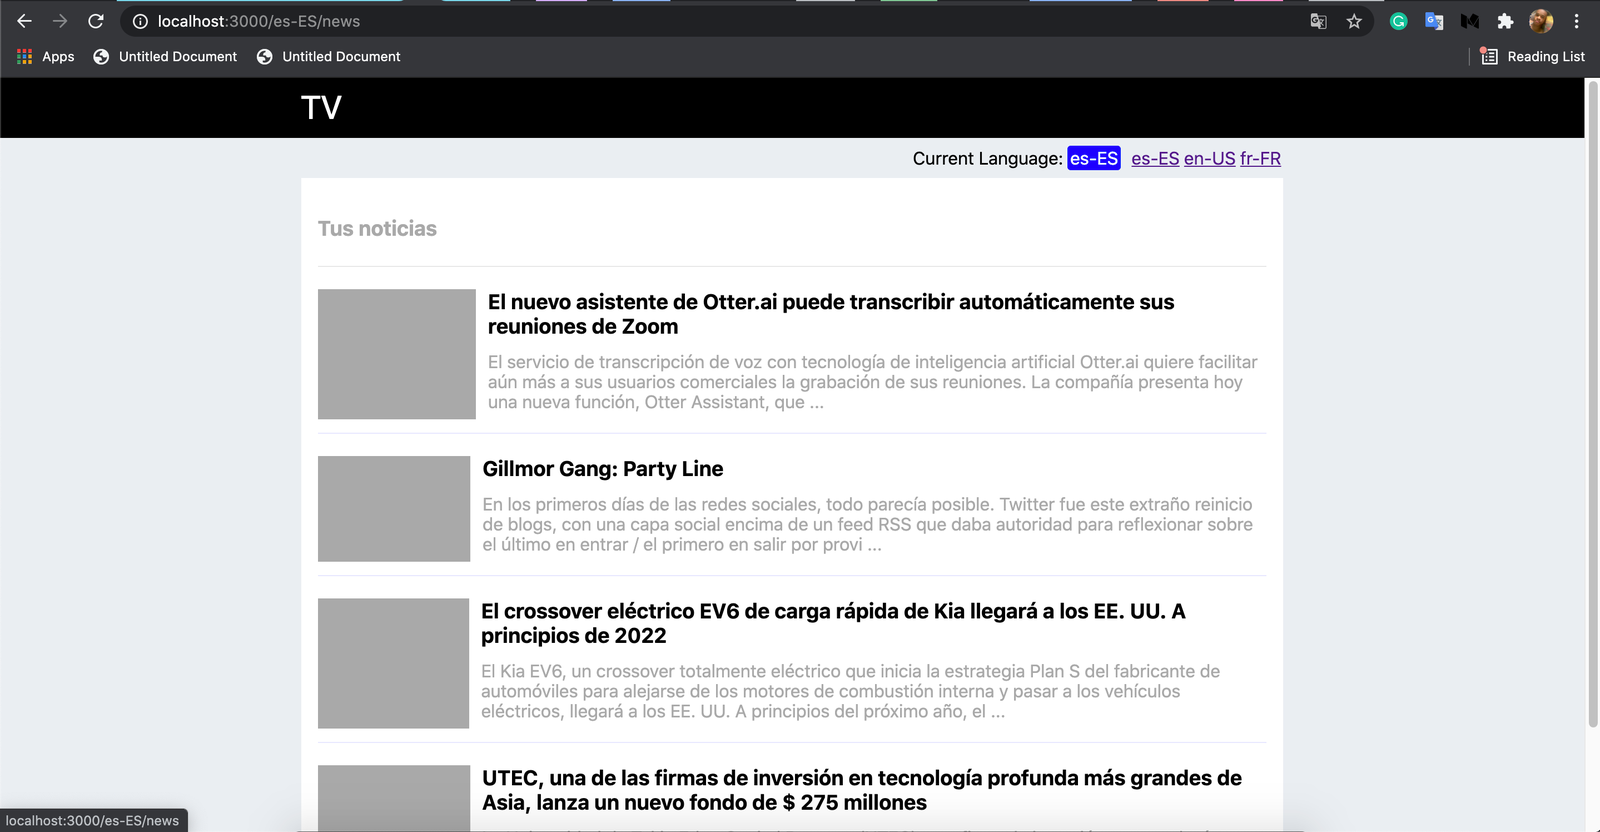 Our News site in Espana(Spanish)